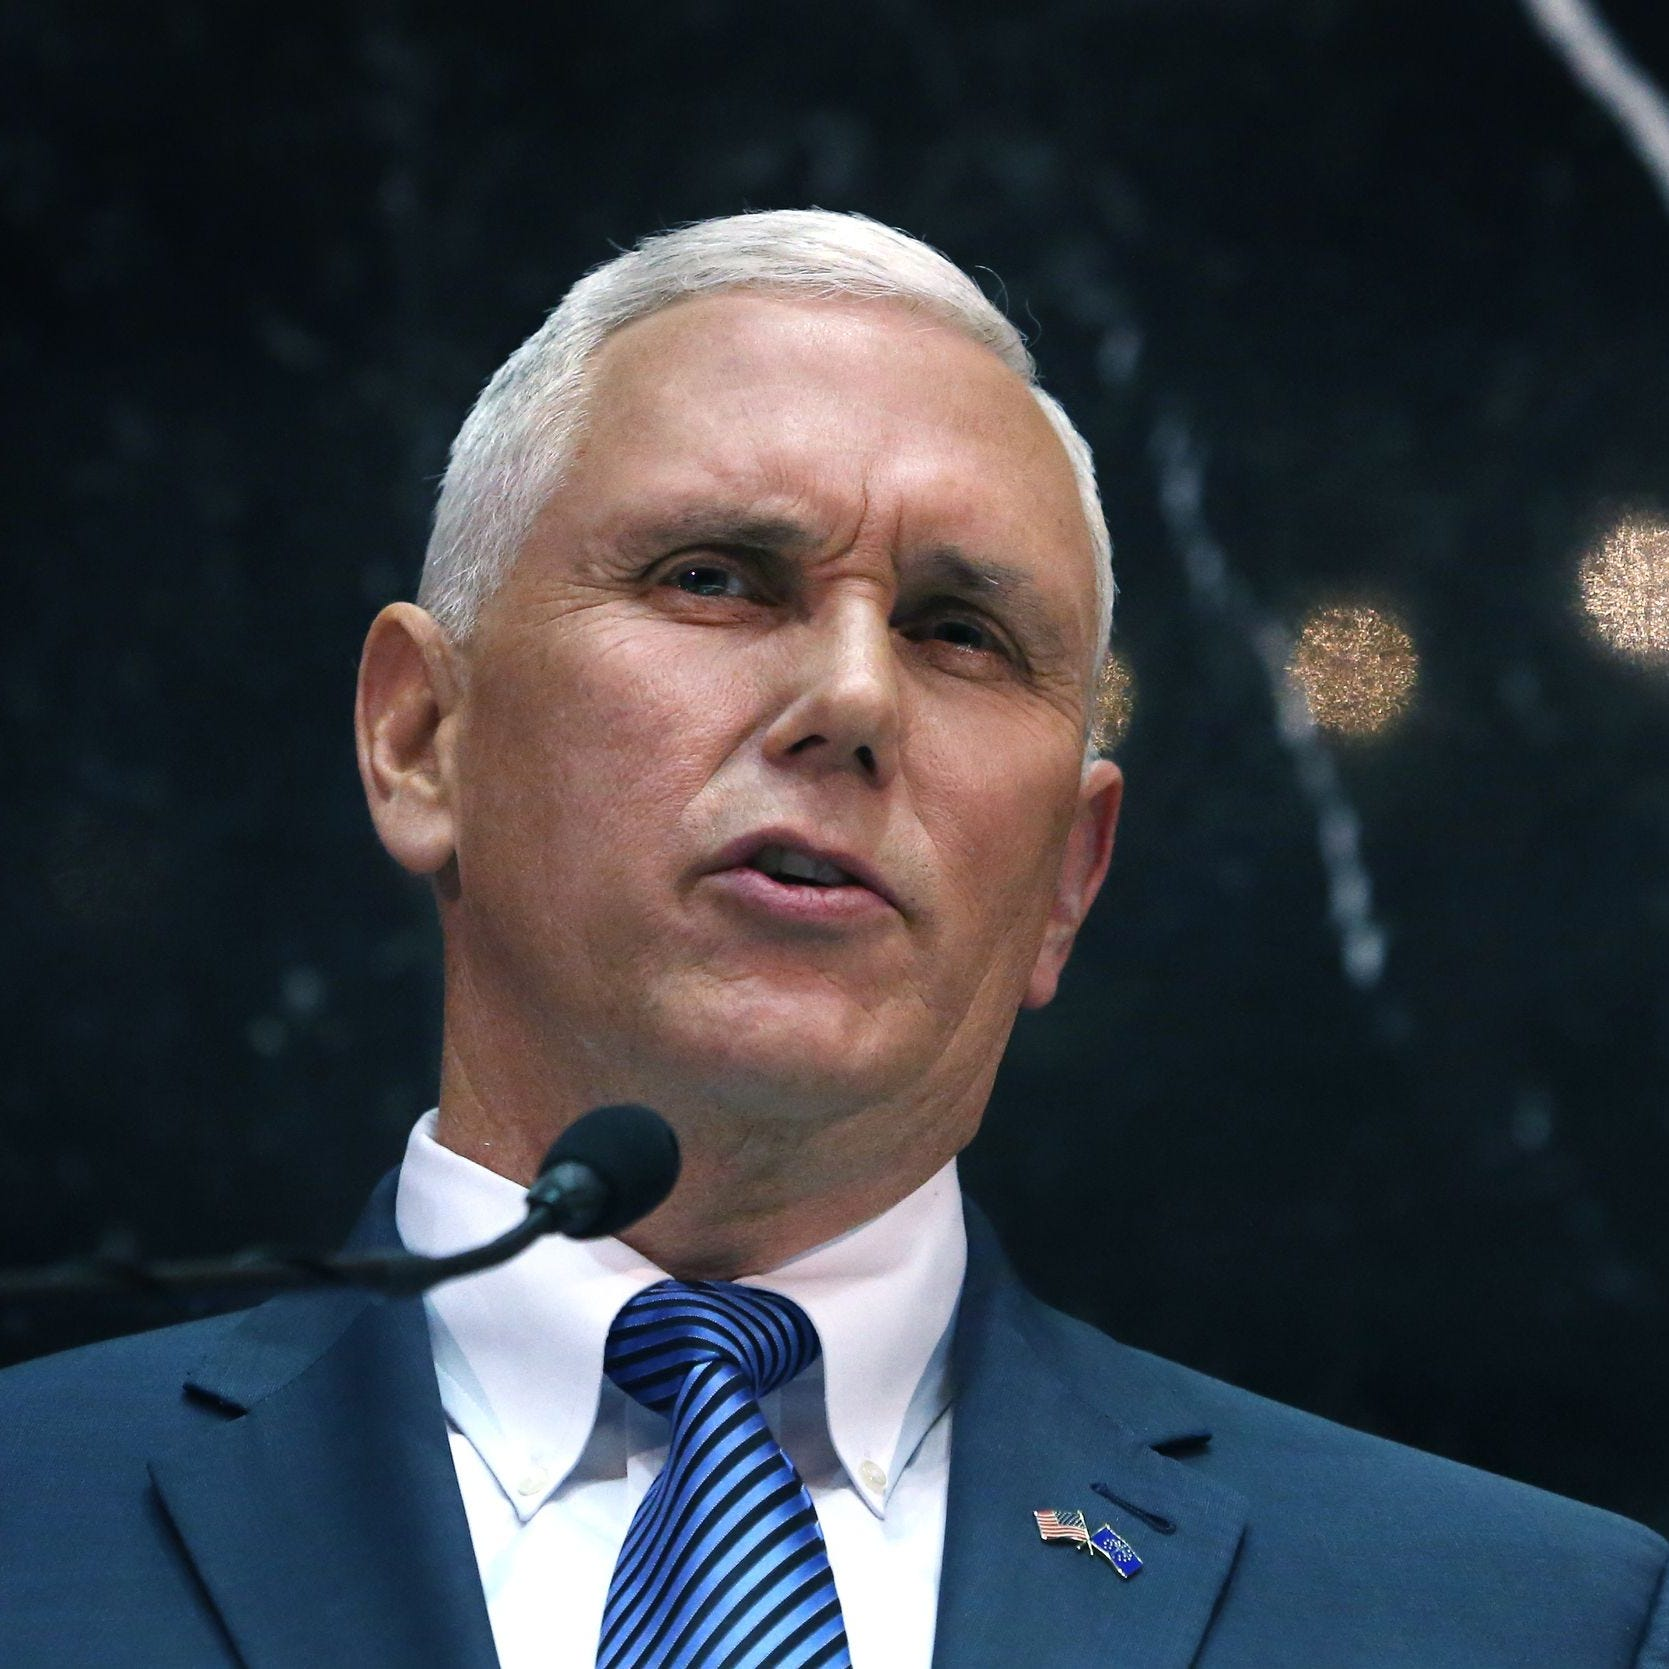 Poll: 12 percent of people have never heard of Mike Pence. How that compares to other VPs